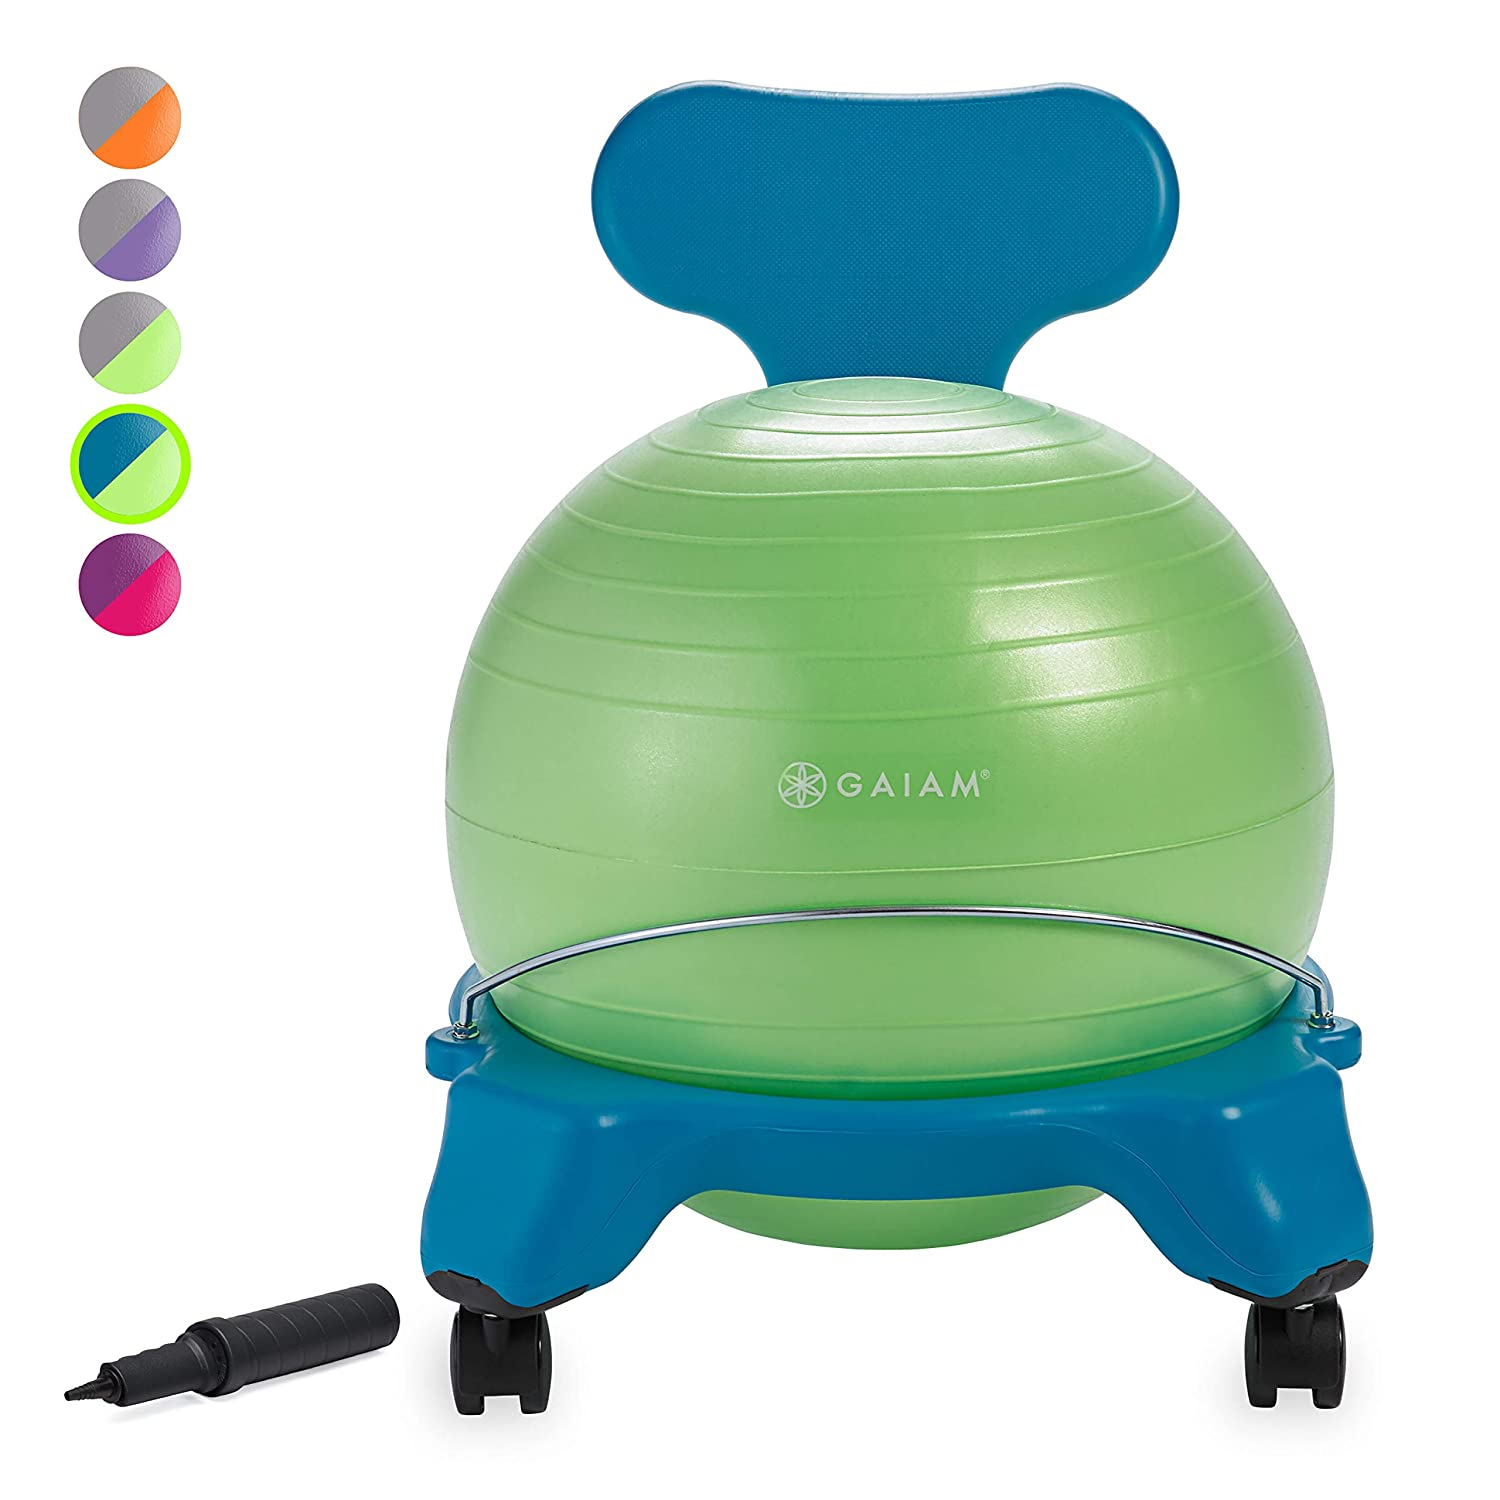 Groovy Gaiam Kids Balance Ball Chair Classic Childrens Stability Ball Chair Child Classroom Desk Seating Caraccident5 Cool Chair Designs And Ideas Caraccident5Info